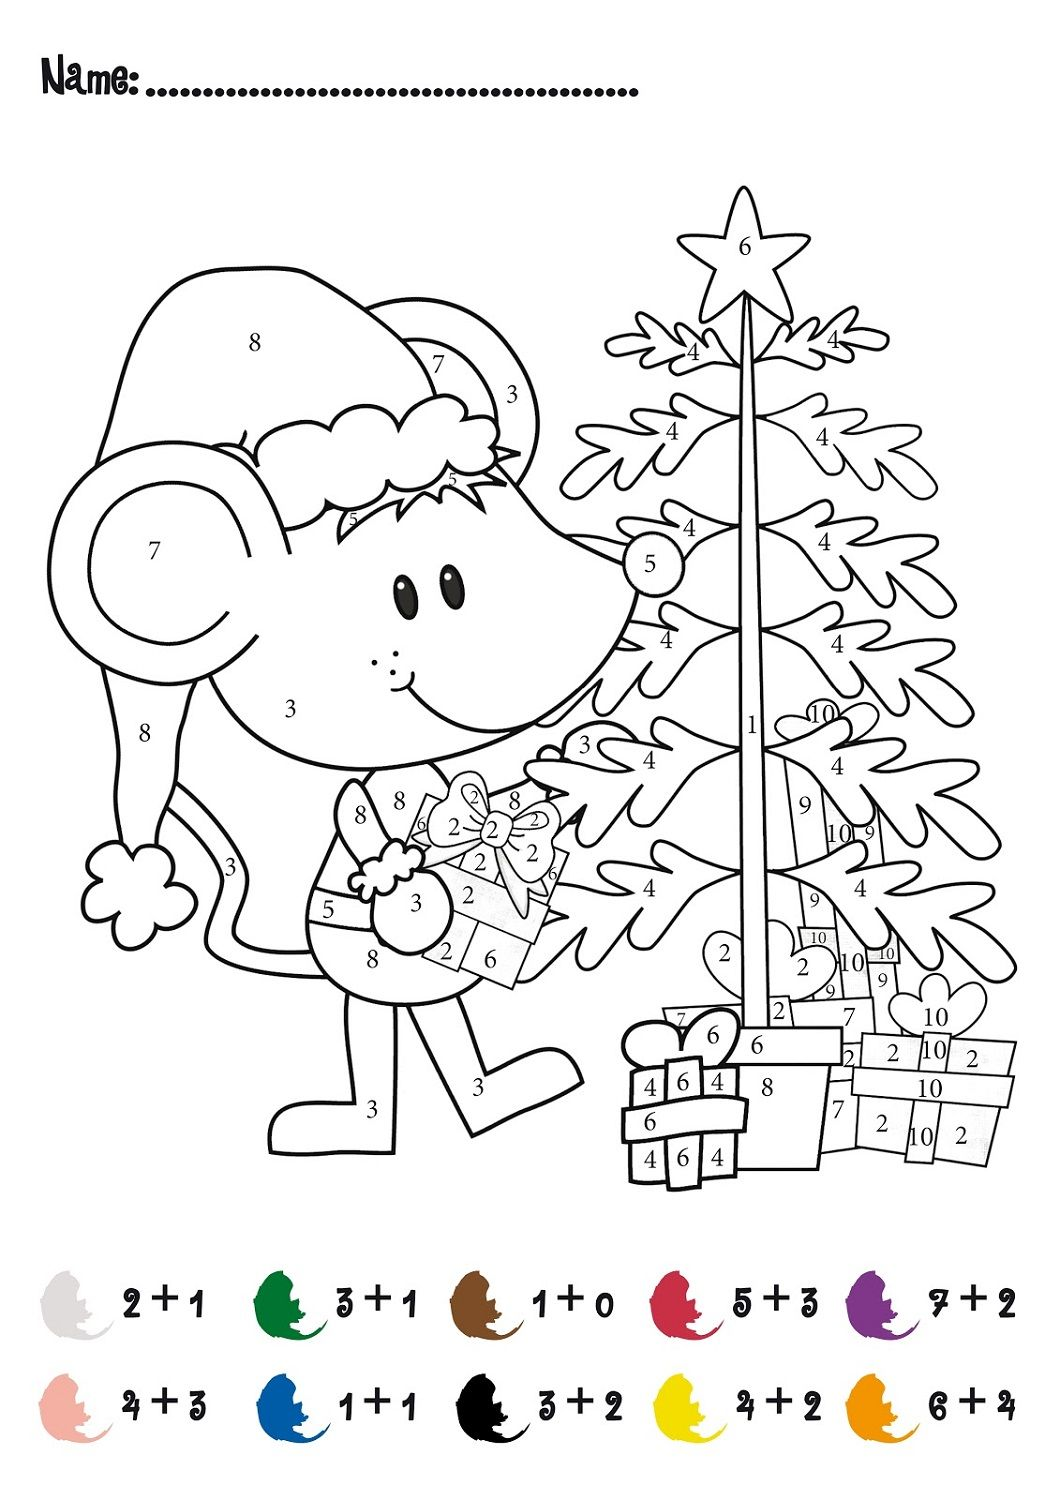 worksheet Math Christmas Worksheets color by number worksheet christmas 2nd grade party pinterest for pre k and kindergarten free printable math coloring worksheets 101 pages